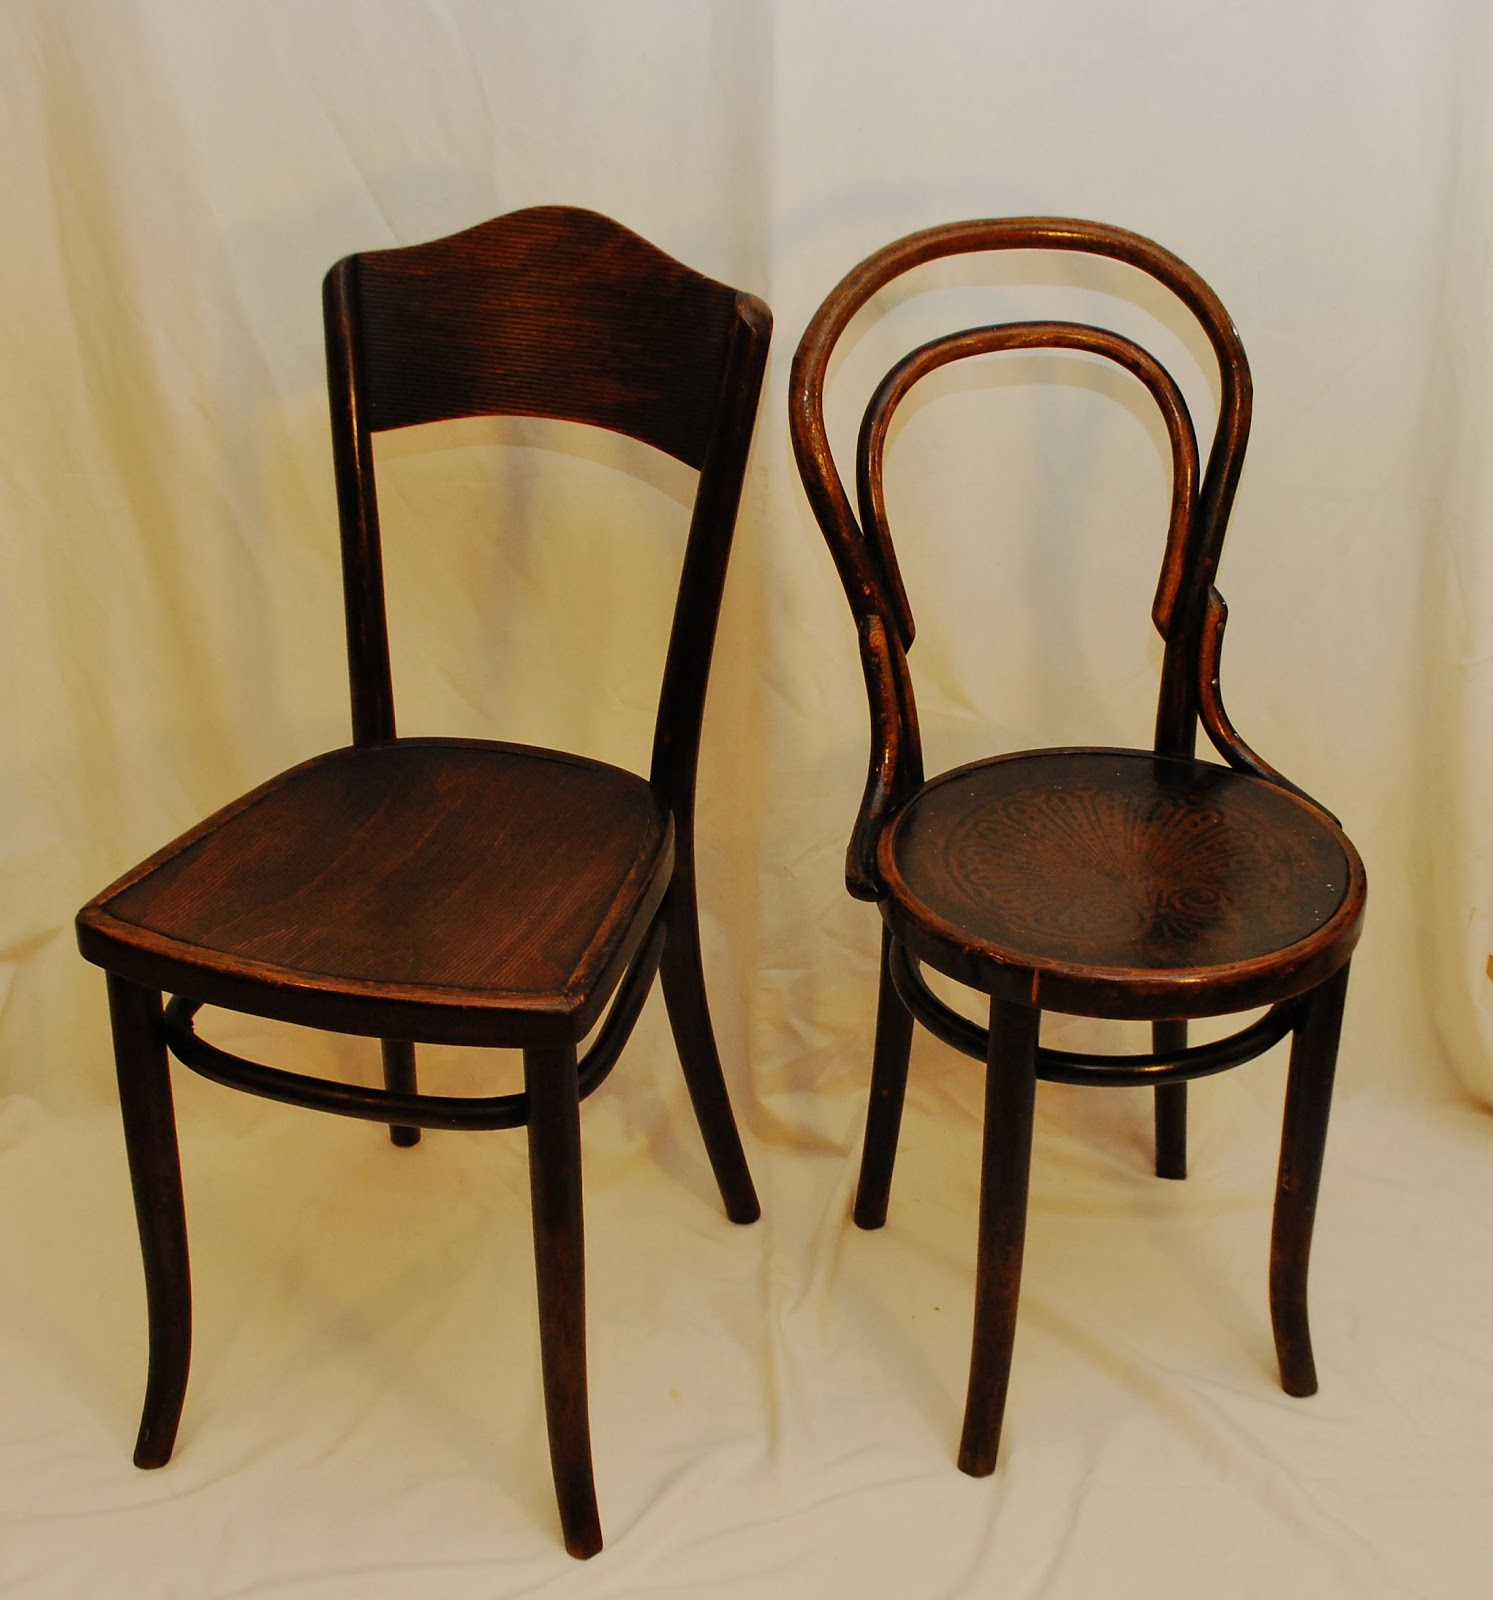 Tribute 20th Decor Authentic Thonet Bentwood Chairs